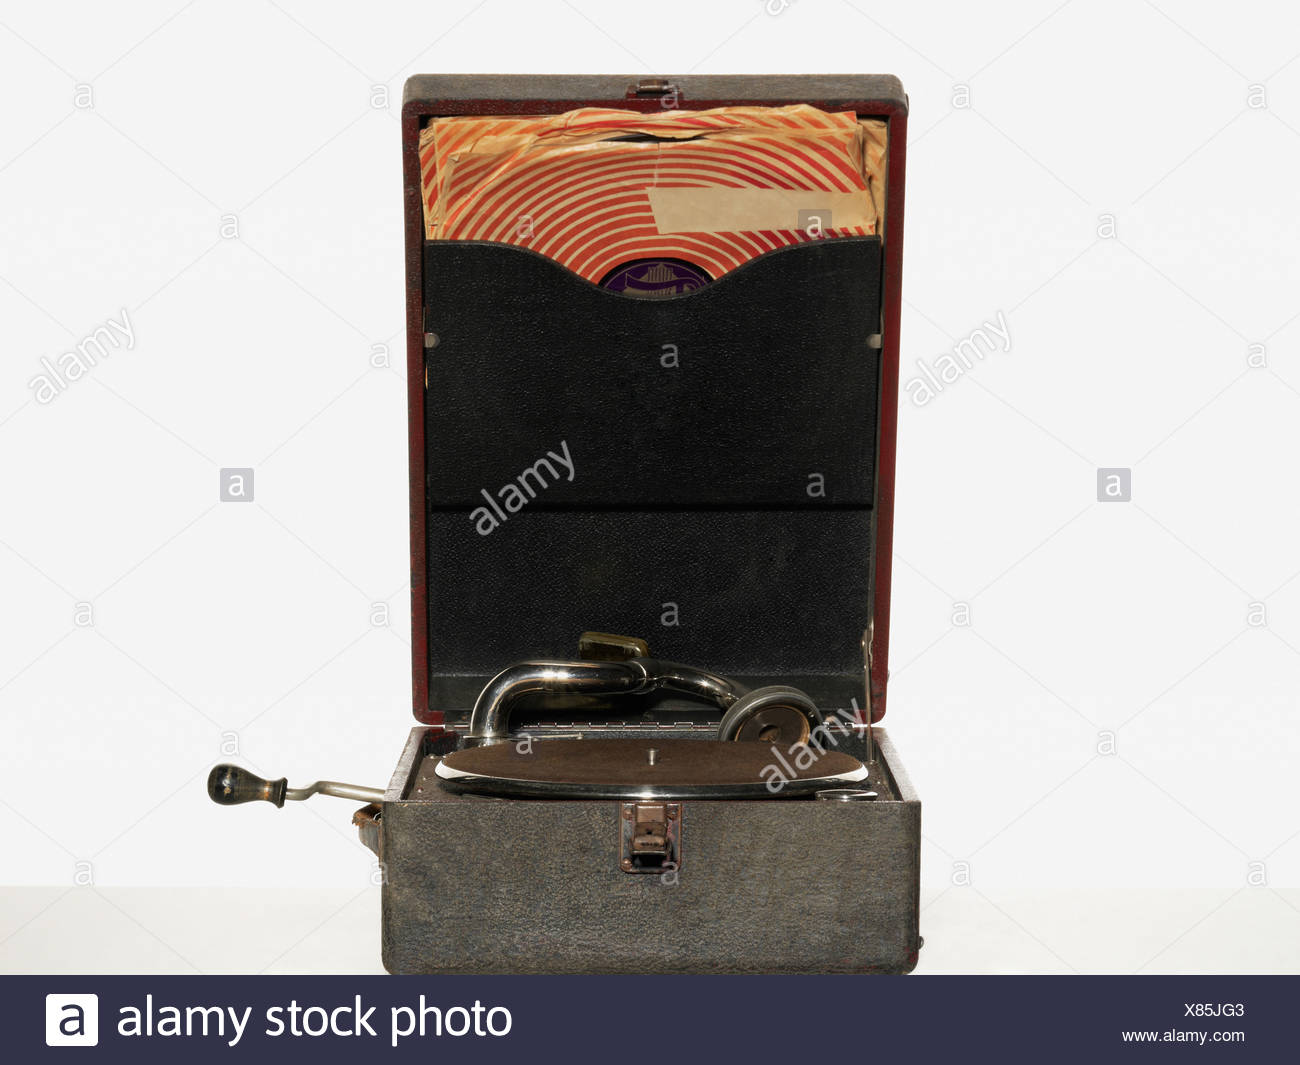 Vintage record player - Stock Image